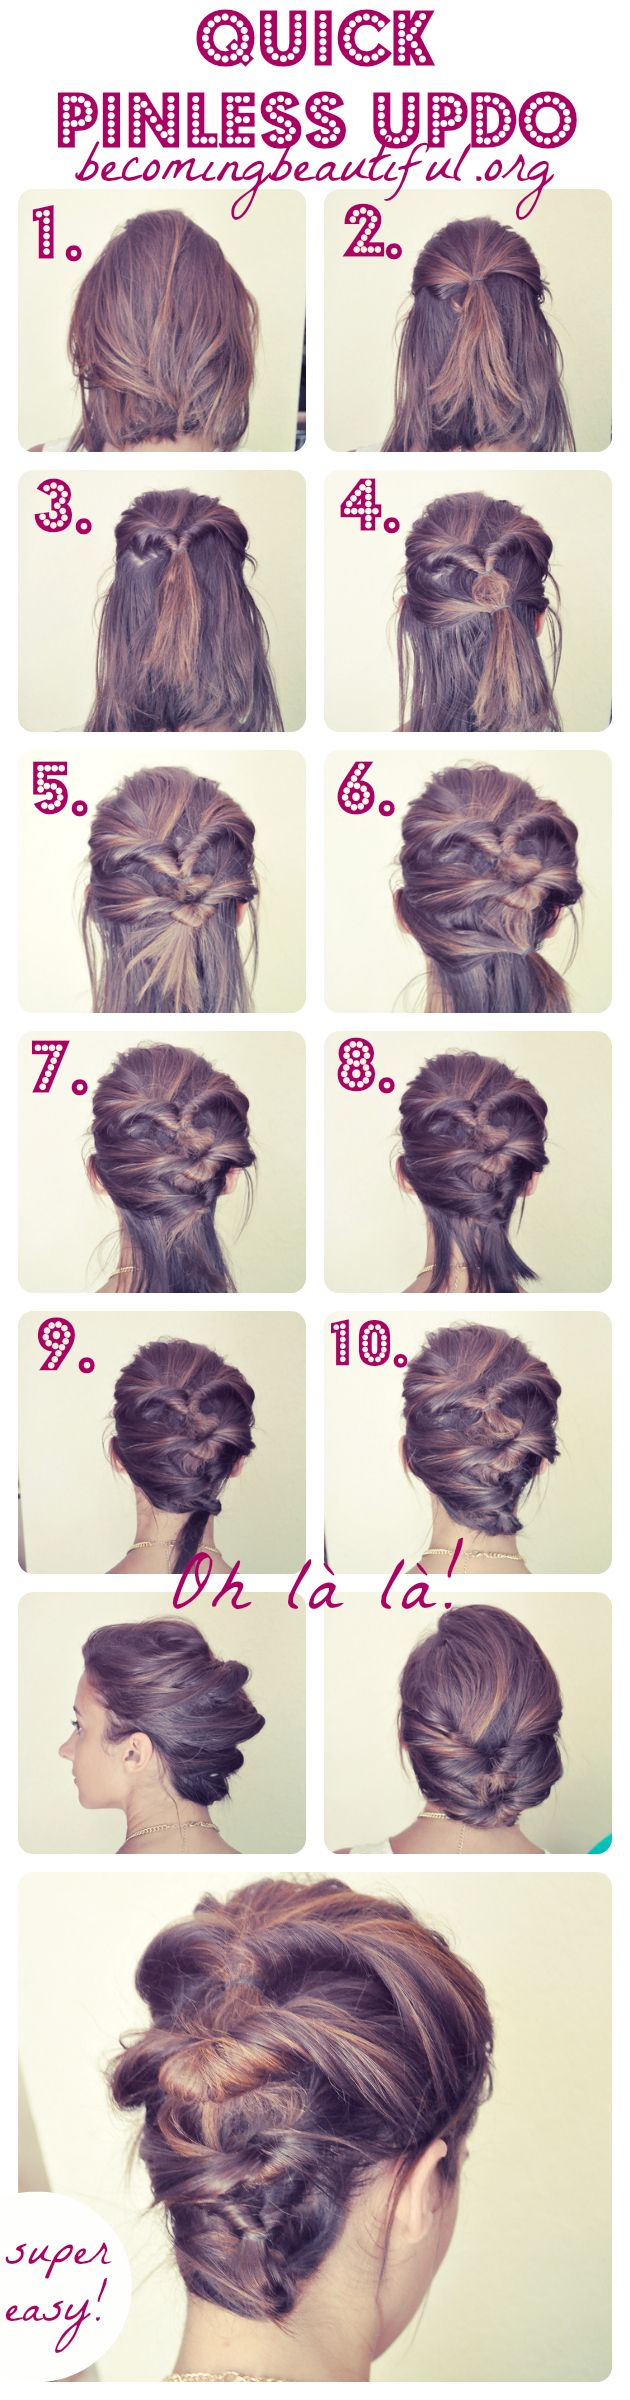 an updo could not get any easier than this! no bobby pins